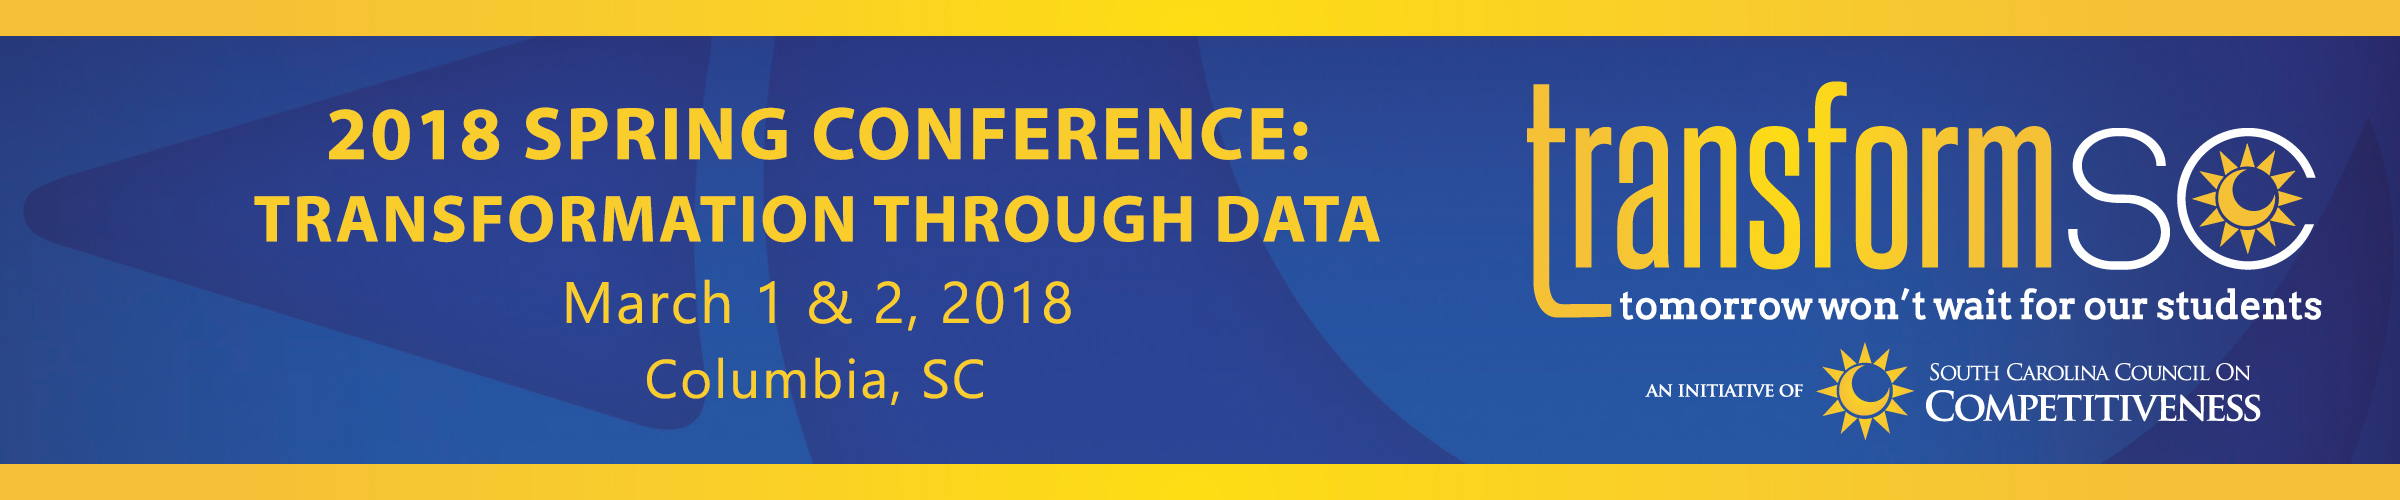 2018 TransformSC Spring Conference